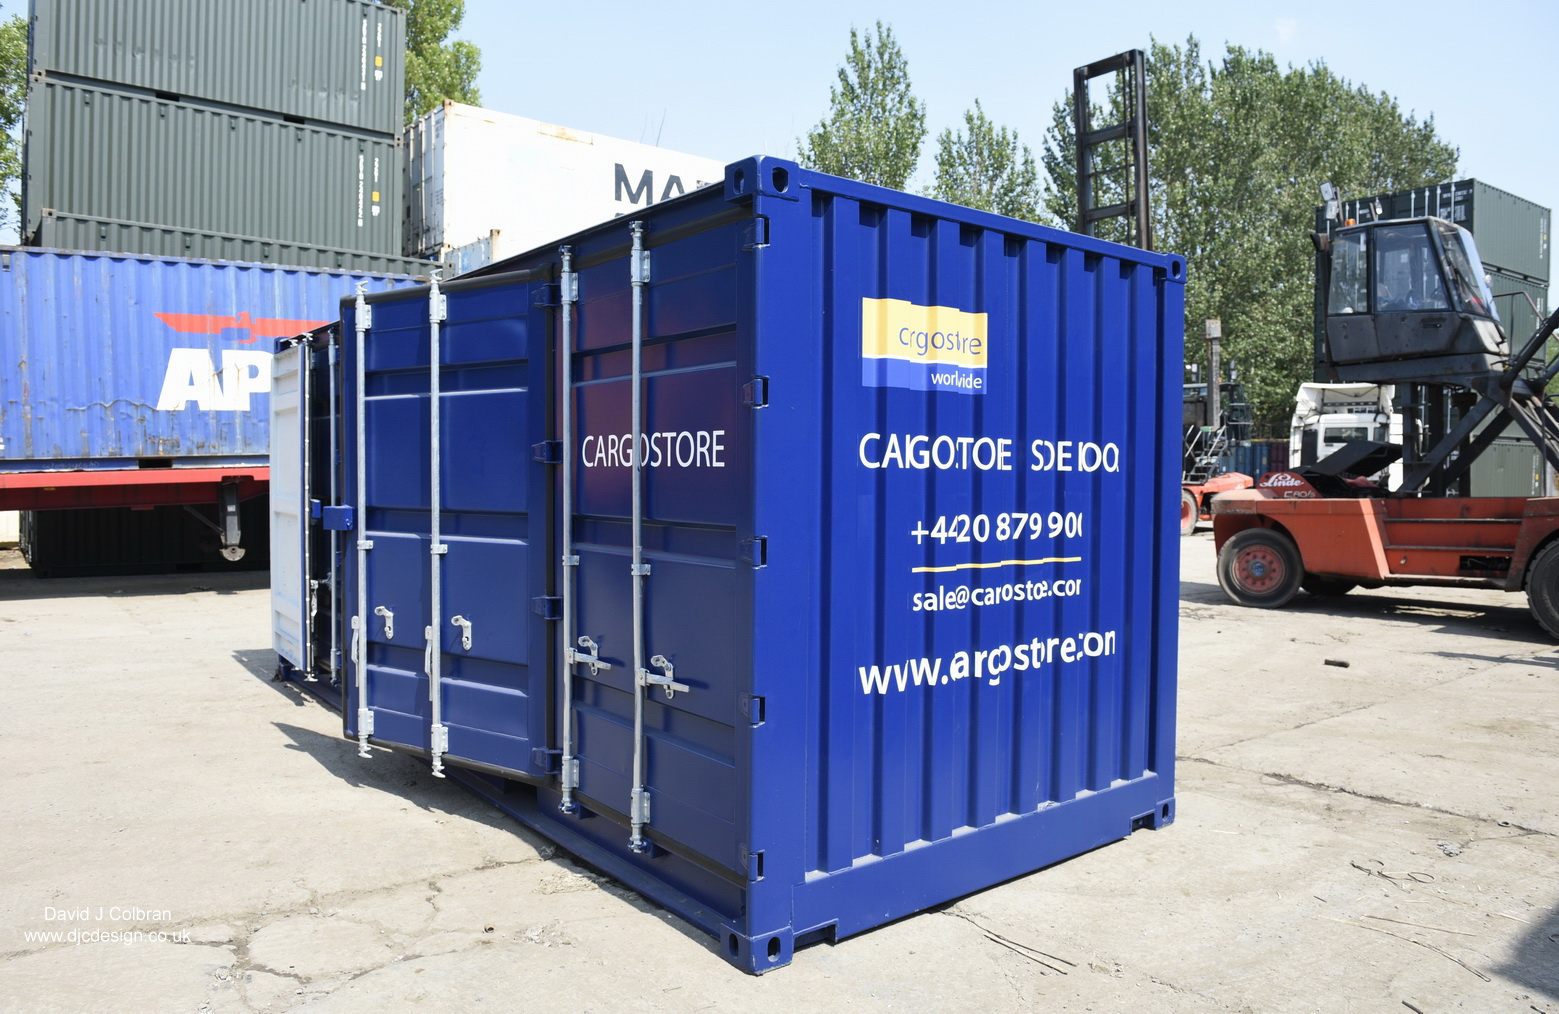 Bespoke Shipping container photography Merseyside